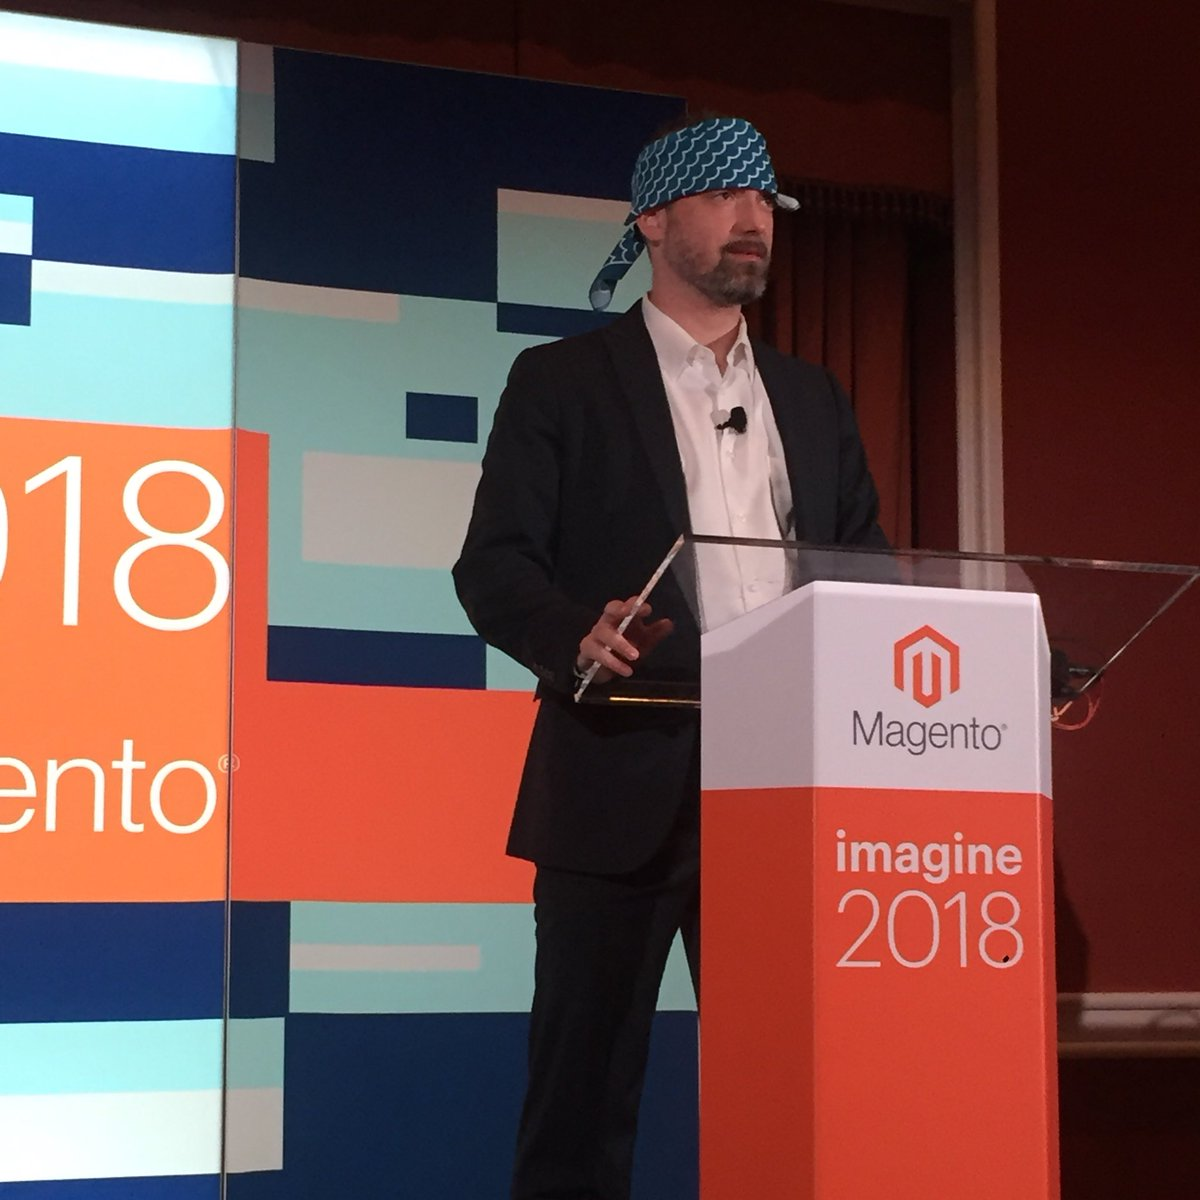 Falkowski: Day 1, Session 1: @JamesZetlen donning the bandana for PWA talk #magentoimagine https://t.co/Oc54Pnt6IZ